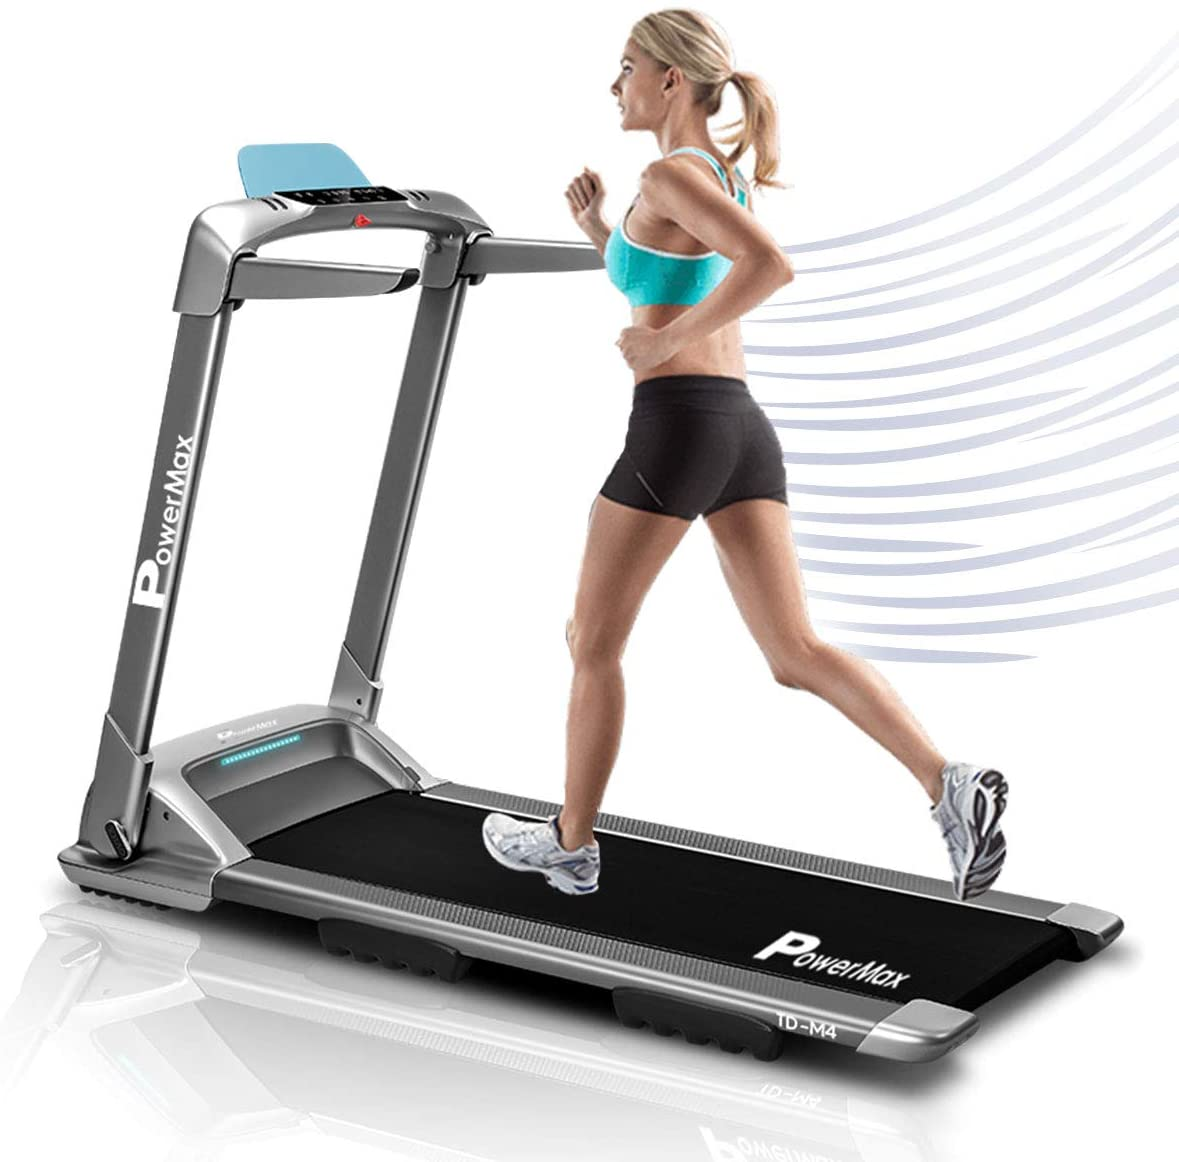 Powermax Home Treadmill